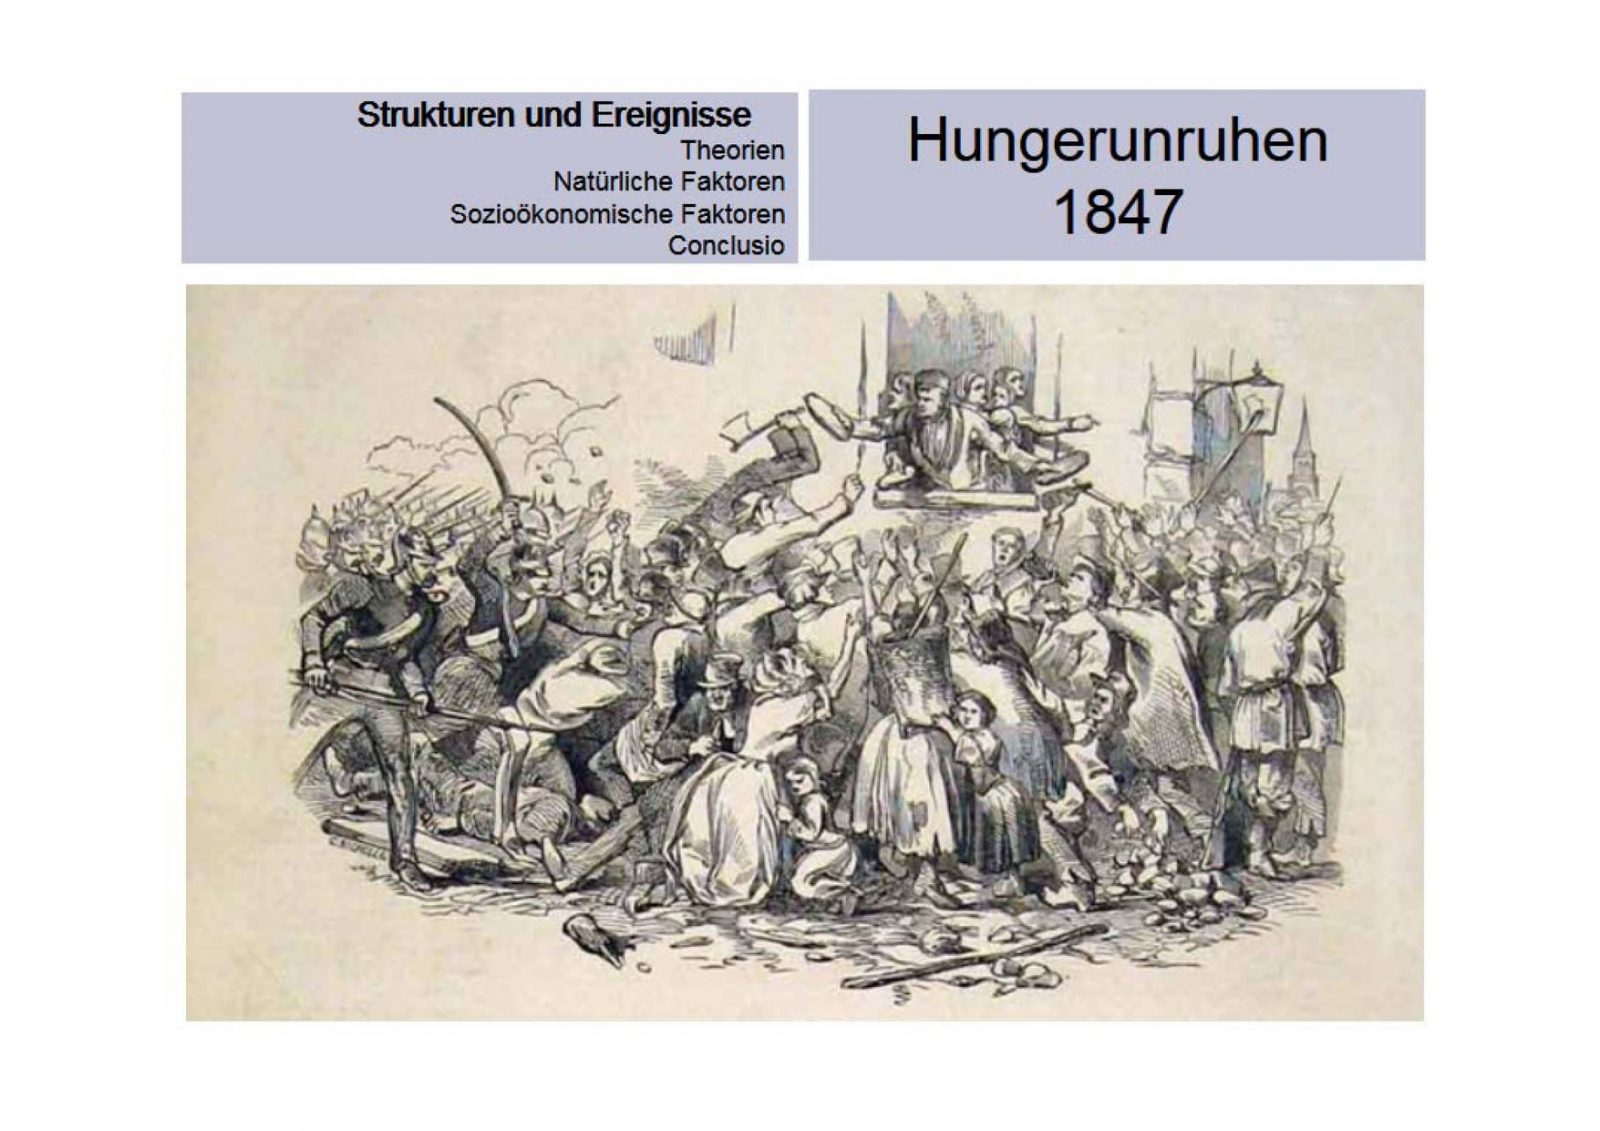 Die Hungerkatastrophe 1846 in Irland: some fact sheets!